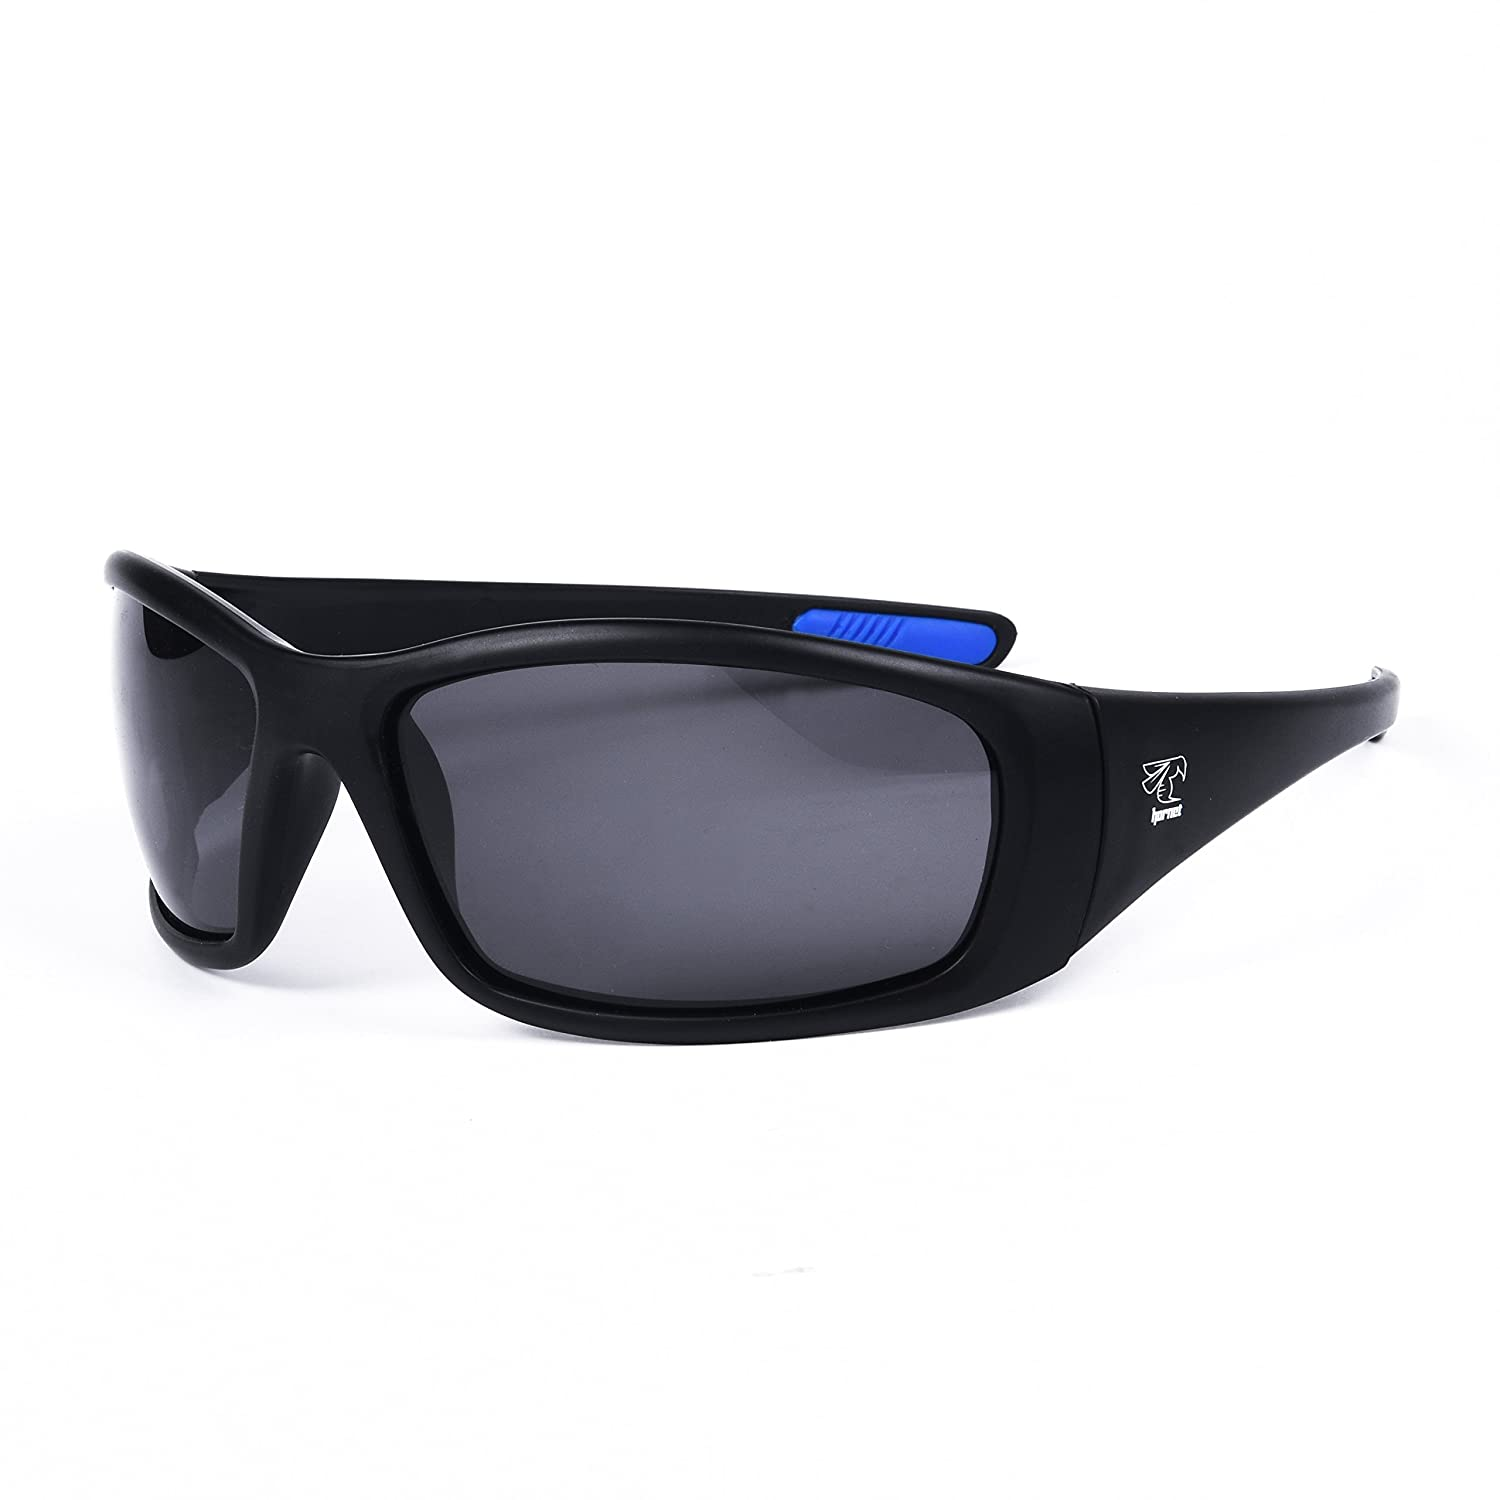 940deba9ba8 Amazon.com  Hornet Watersports Polarized Floating Sunglasses - Ideal for  Rowing